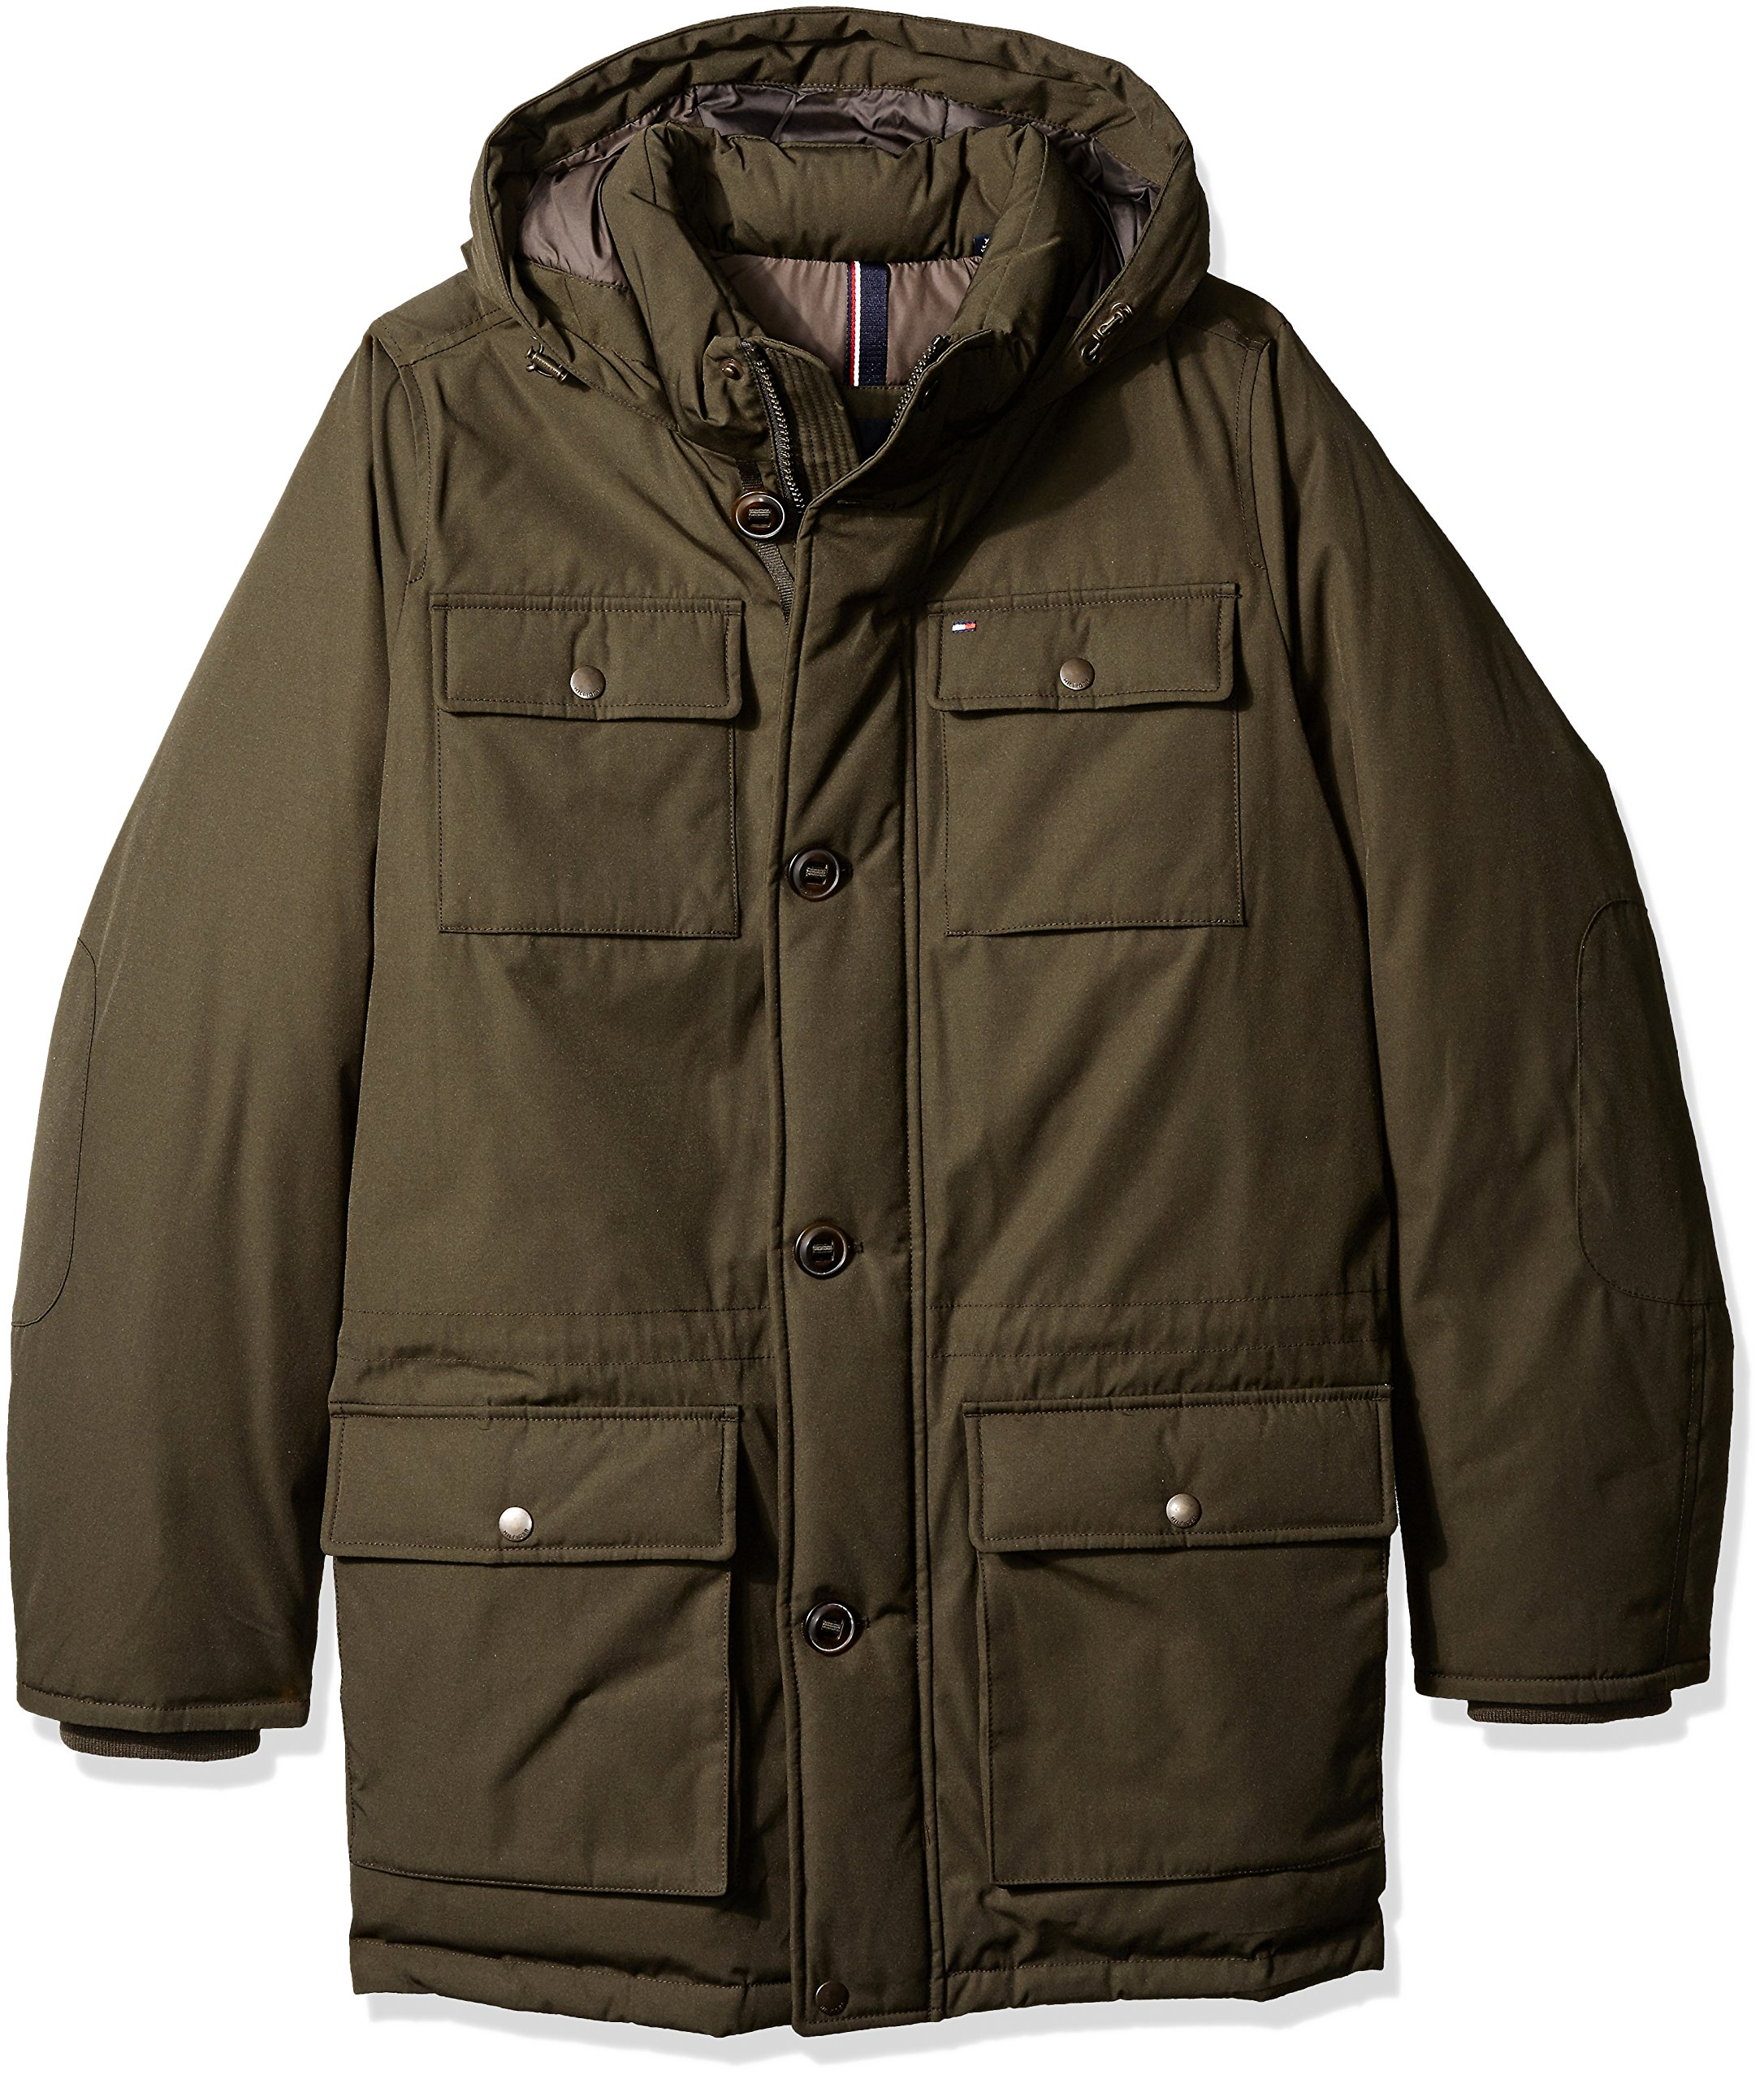 Tommy Hilfiger Men's Tall Size Performance Hooded Field Coat, Dark Forest, Long/Tall